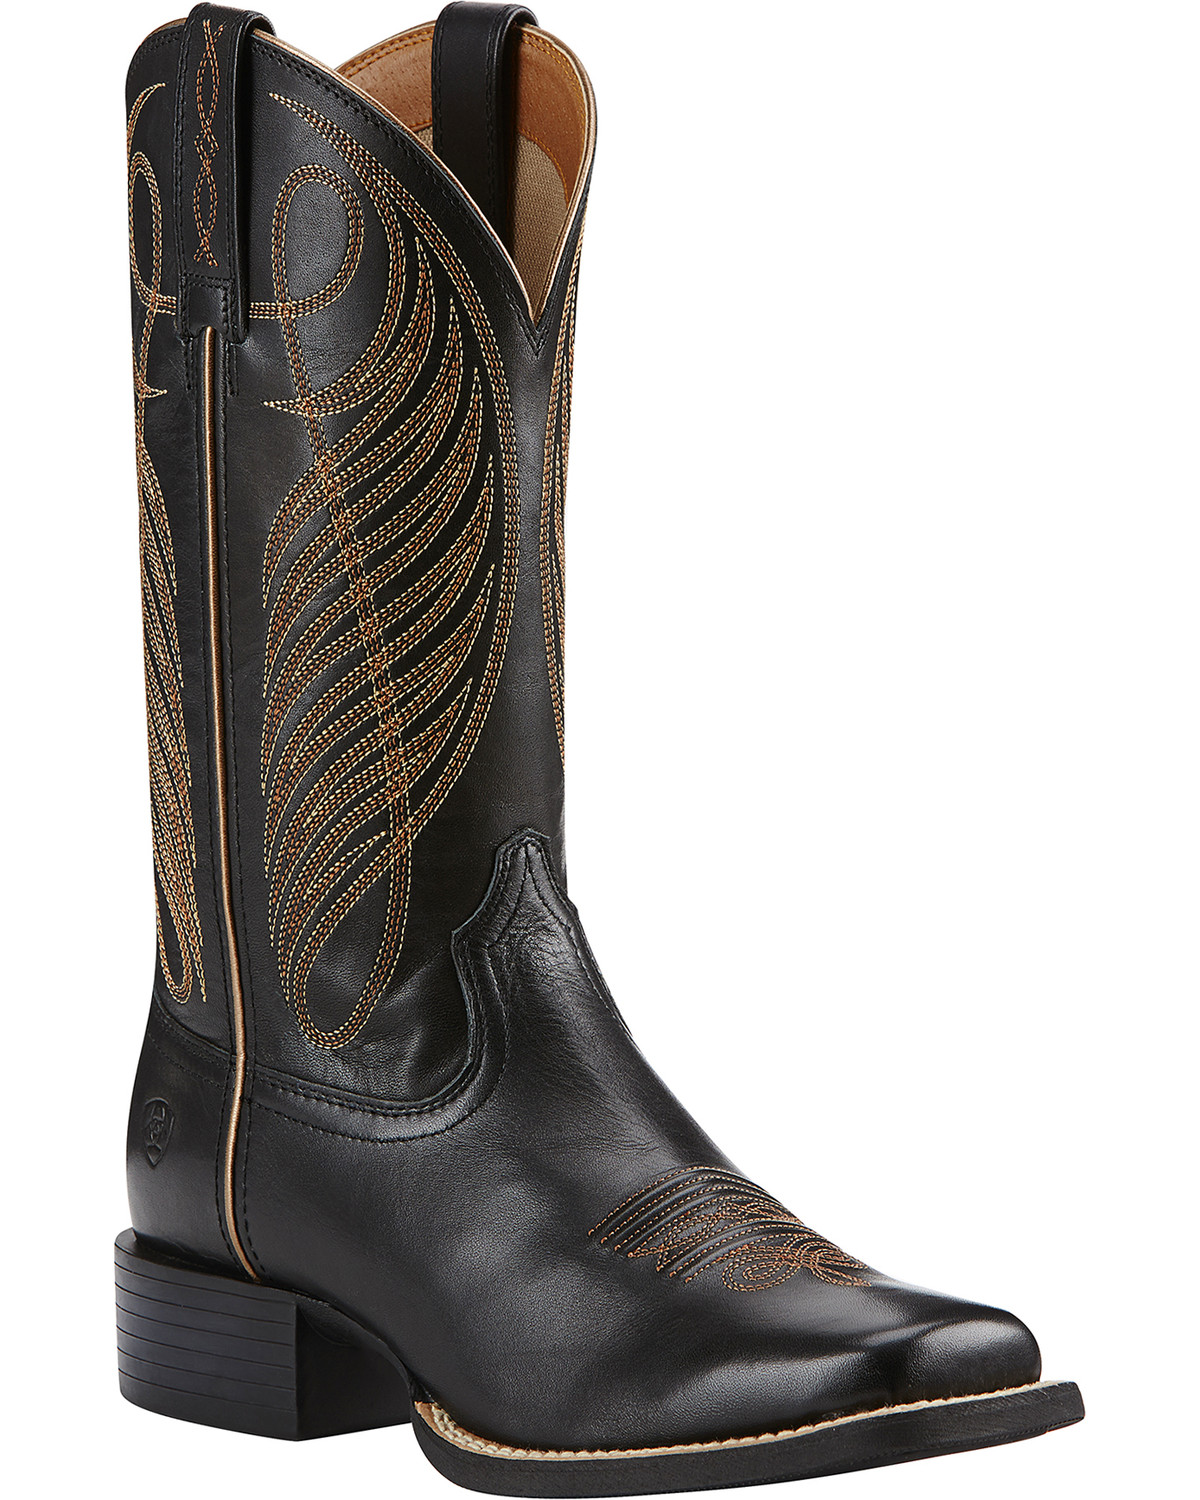 Simple Book Of Ariat Boots For Women Square Toe In Us By Noah | Sobatapk.com